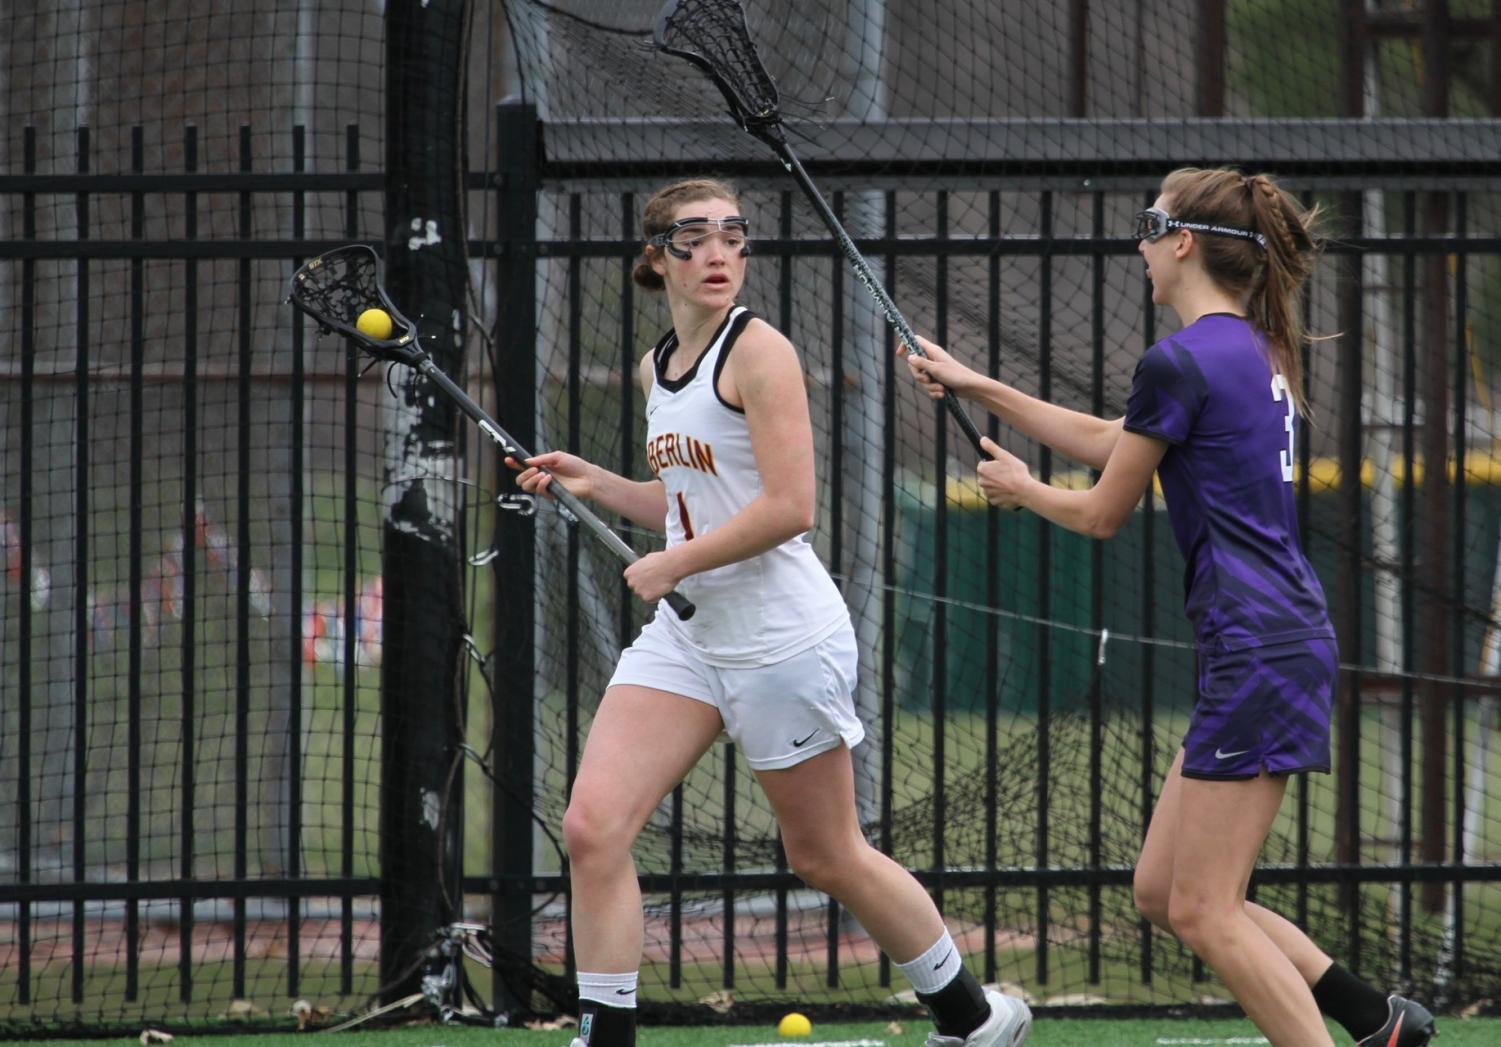 Senior midfielder Sydney Garvis attempts to rifle the ball past a Kenyon College Ladies defender on senior day. The Yeowomen ended their season last Wednesday against the College of Wooster Fighting Scots in the NCAC semifinals.